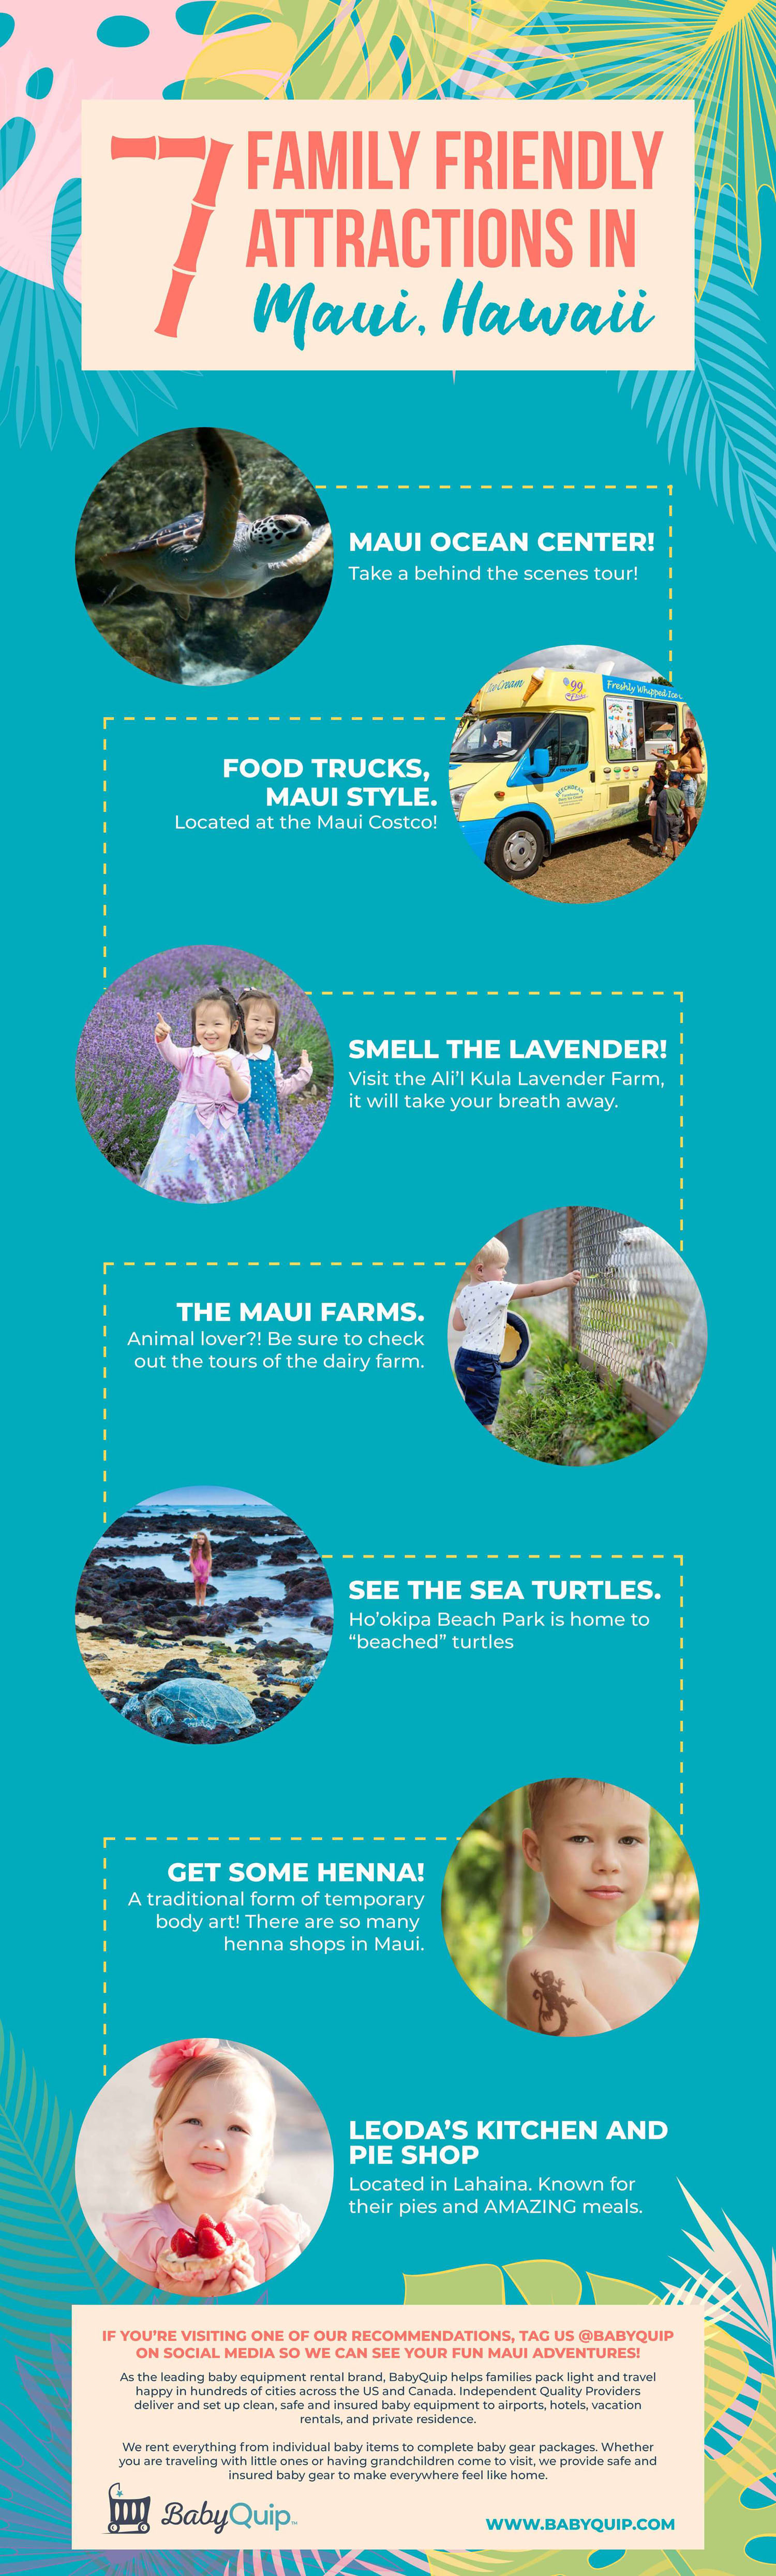 7 Family Friendly Attractions in Maui, Hawaii